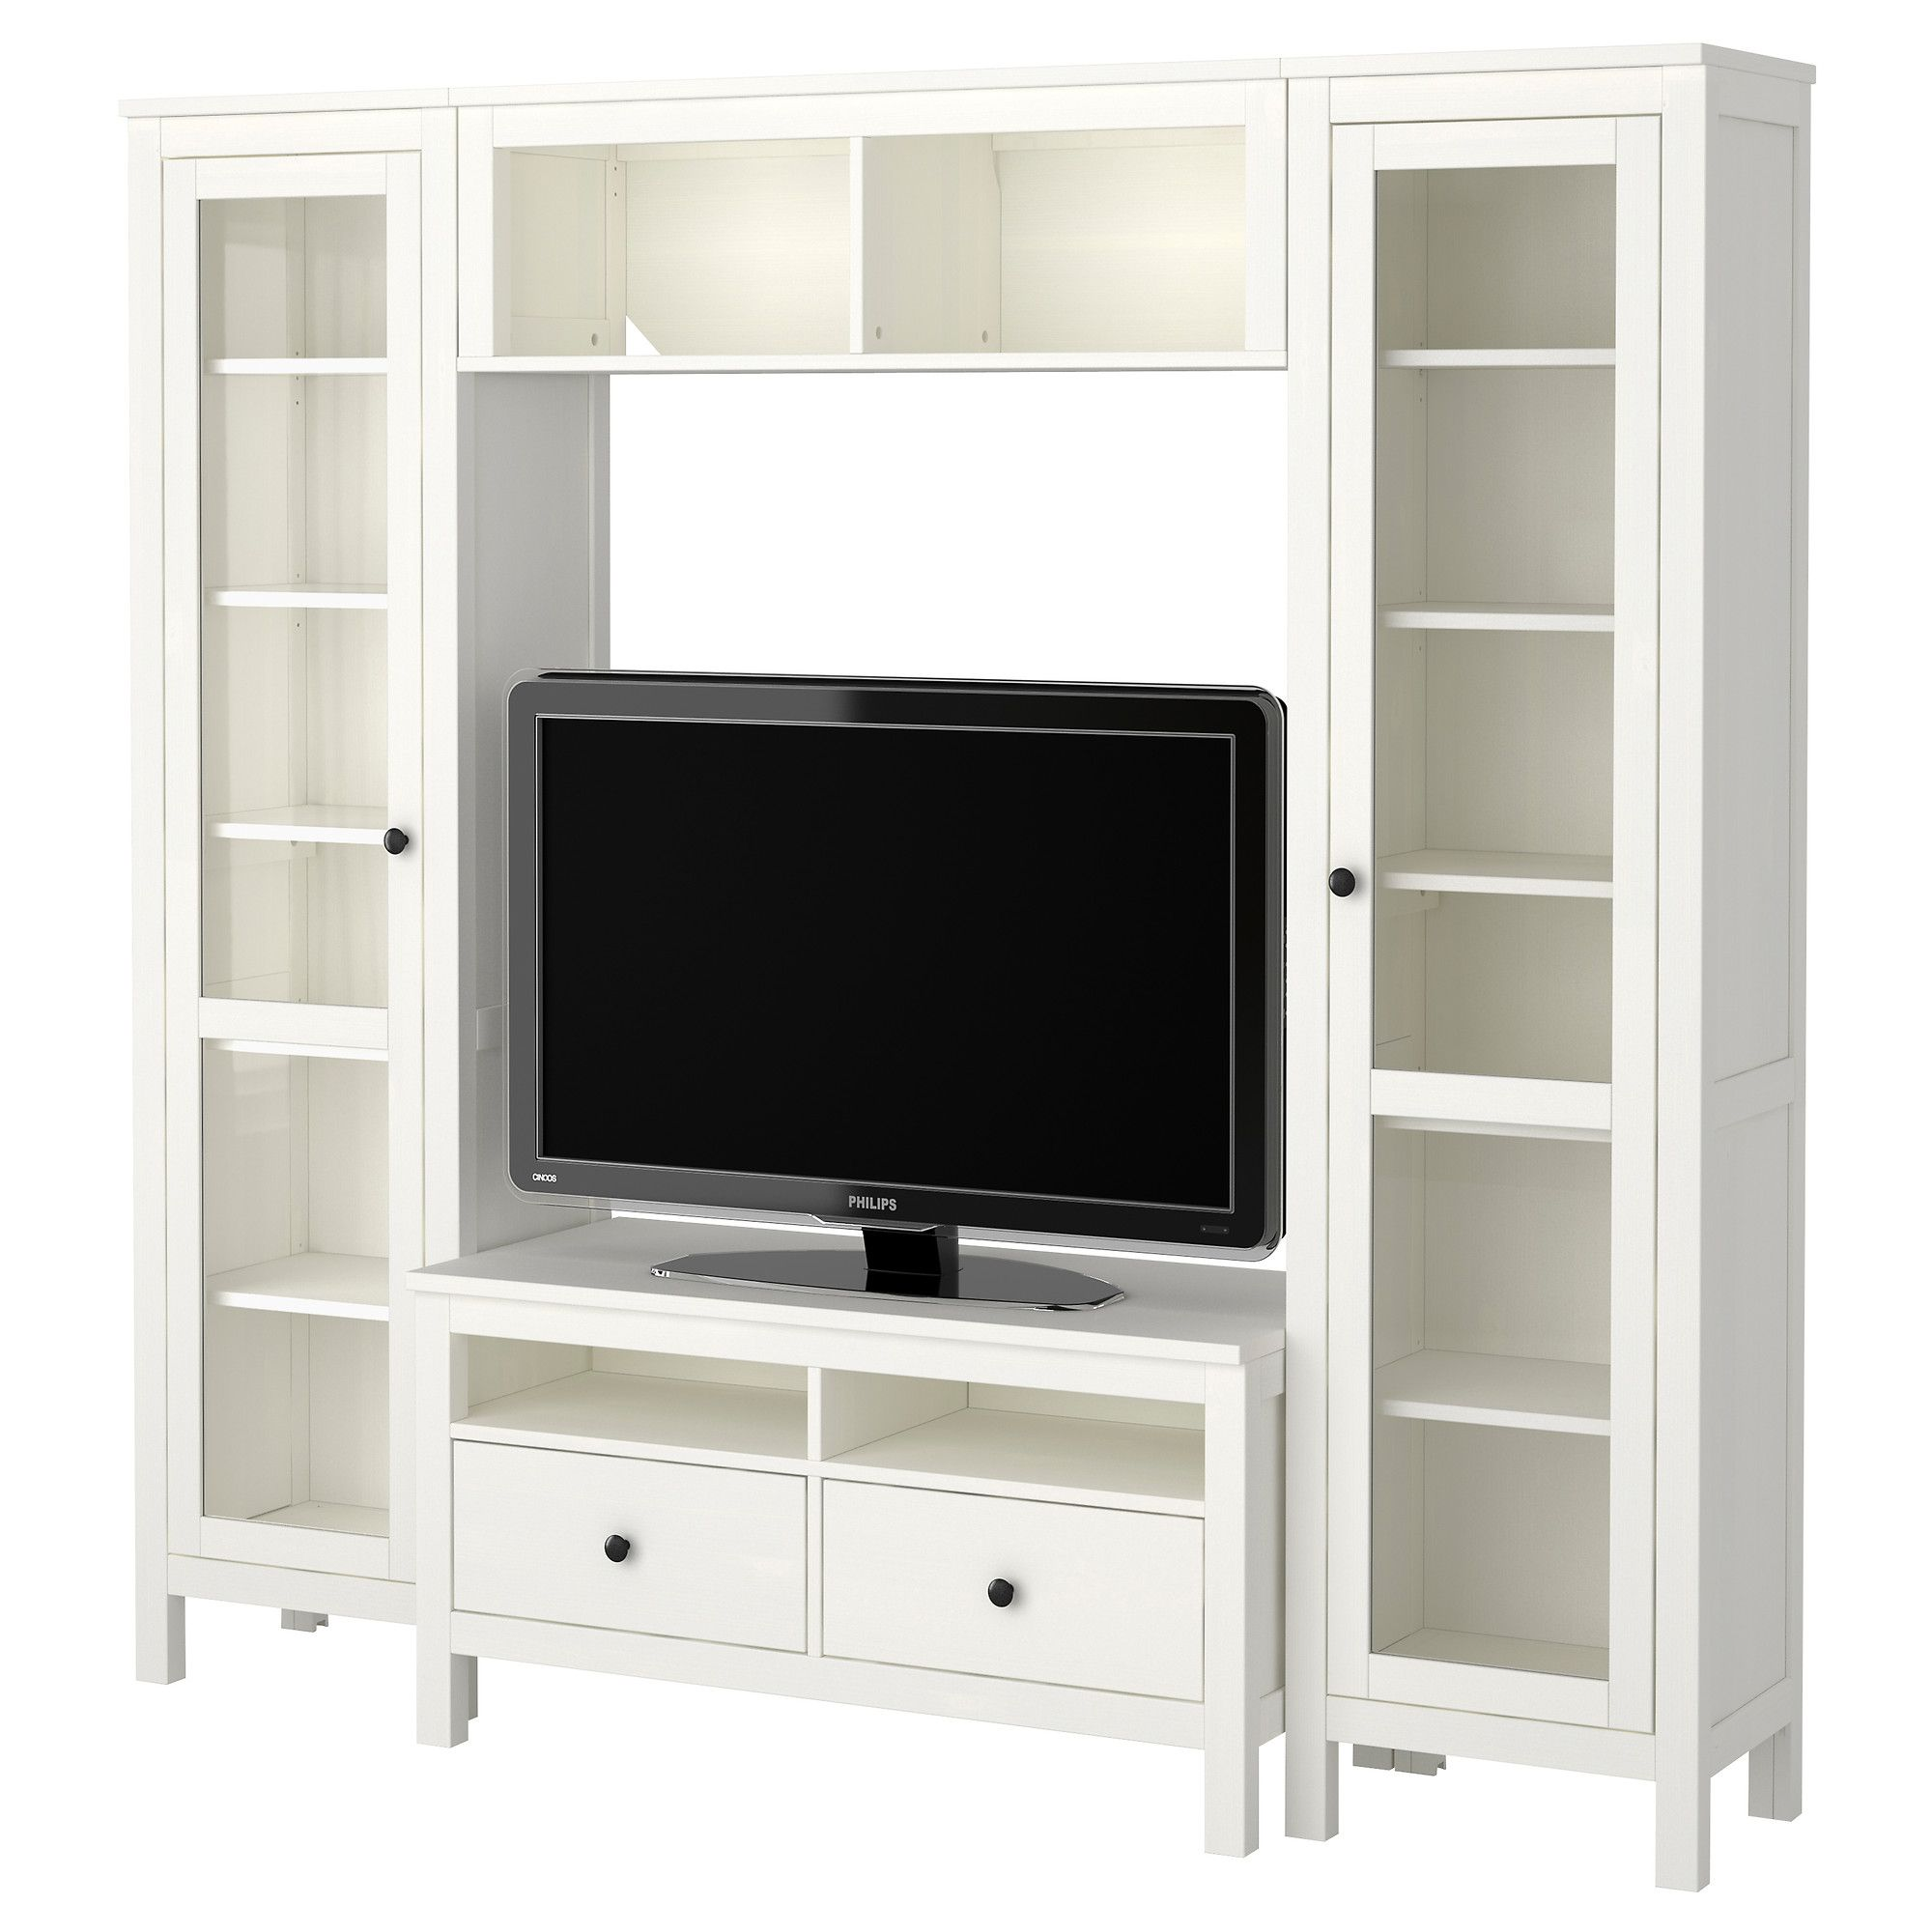 hemnes ikea pinterest meuble blanc meuble t l et logement. Black Bedroom Furniture Sets. Home Design Ideas